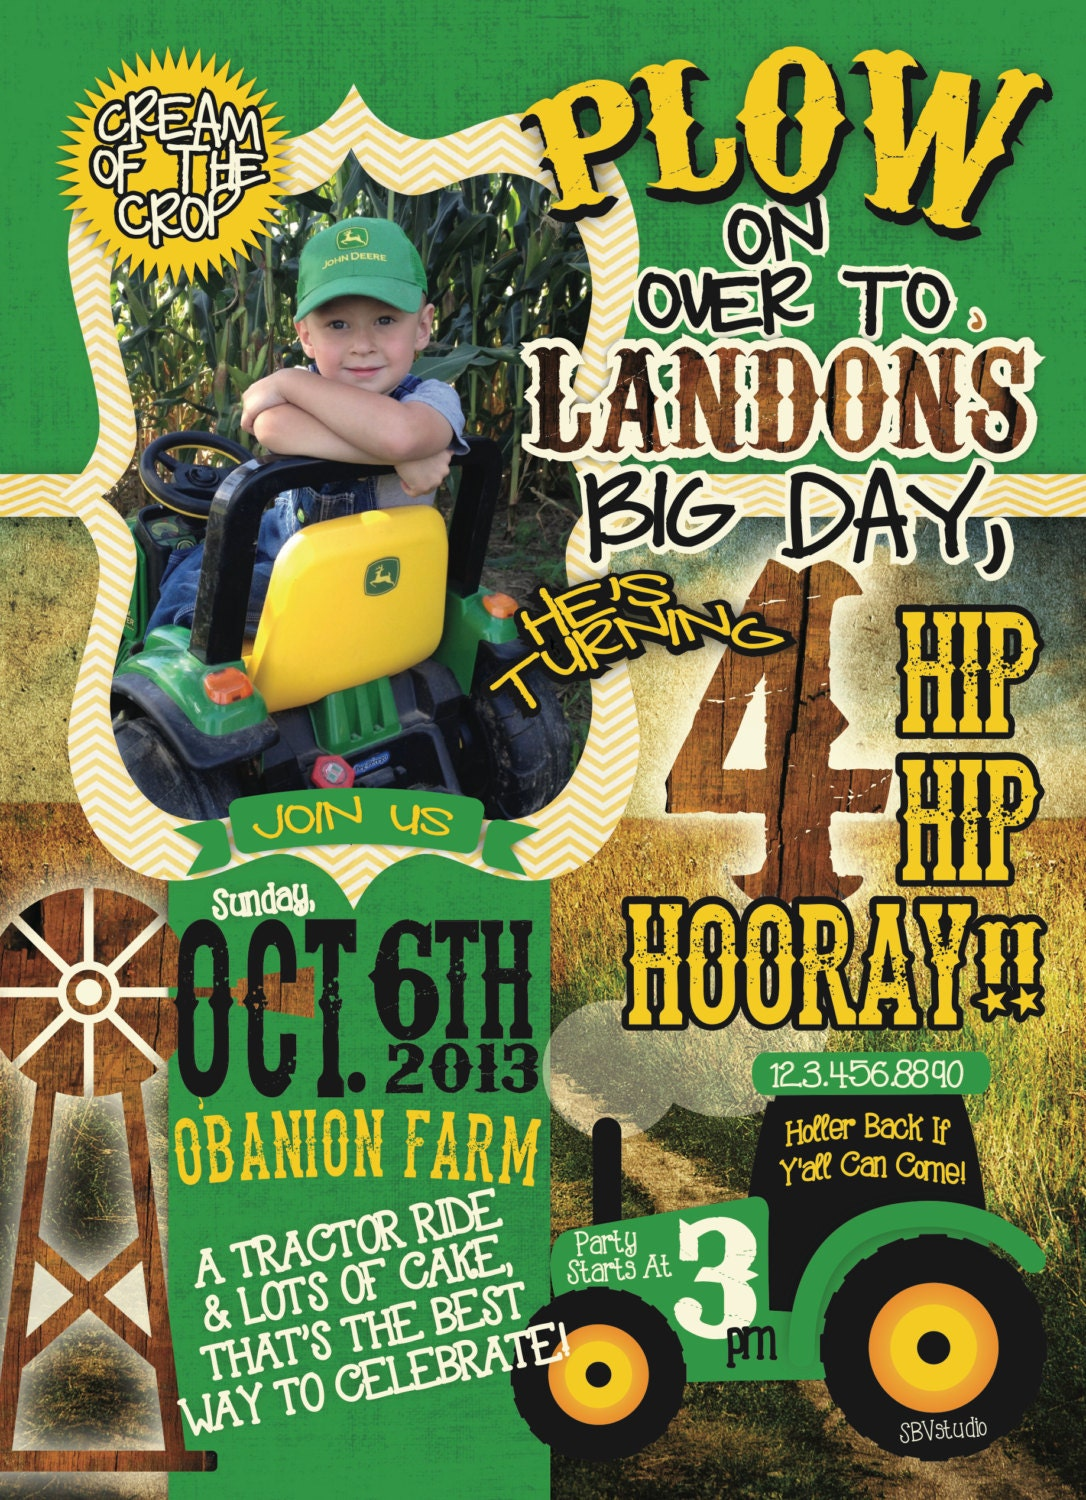 John Deere Party Invitations is one of our best ideas you might choose for invitation design